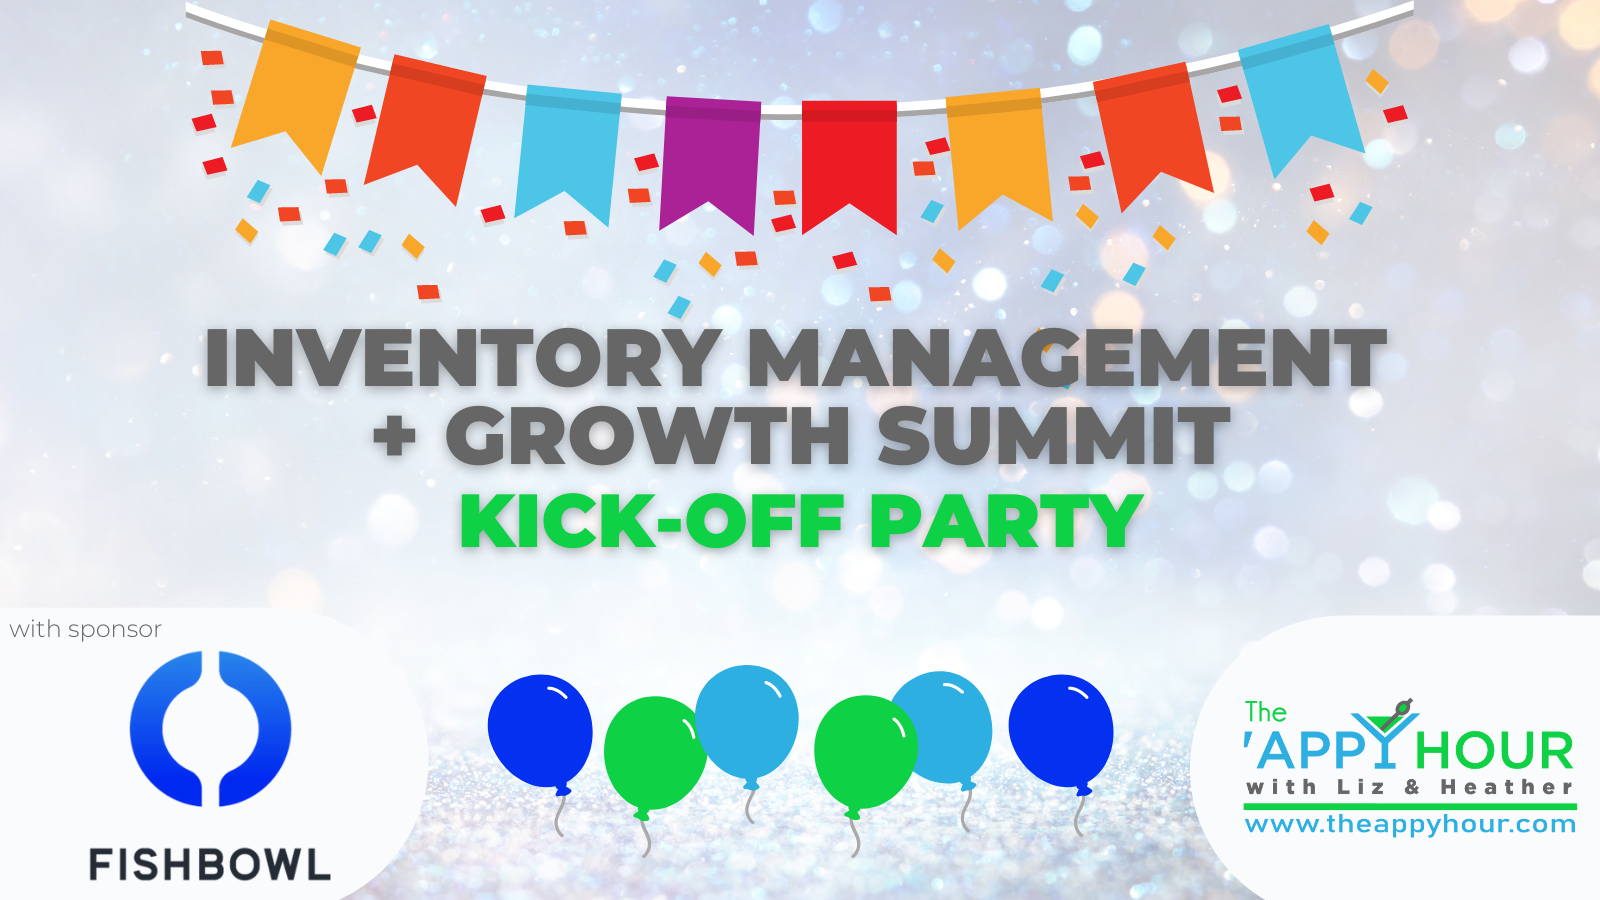 Inventory Management + Growth Summit Kick-Off Party!